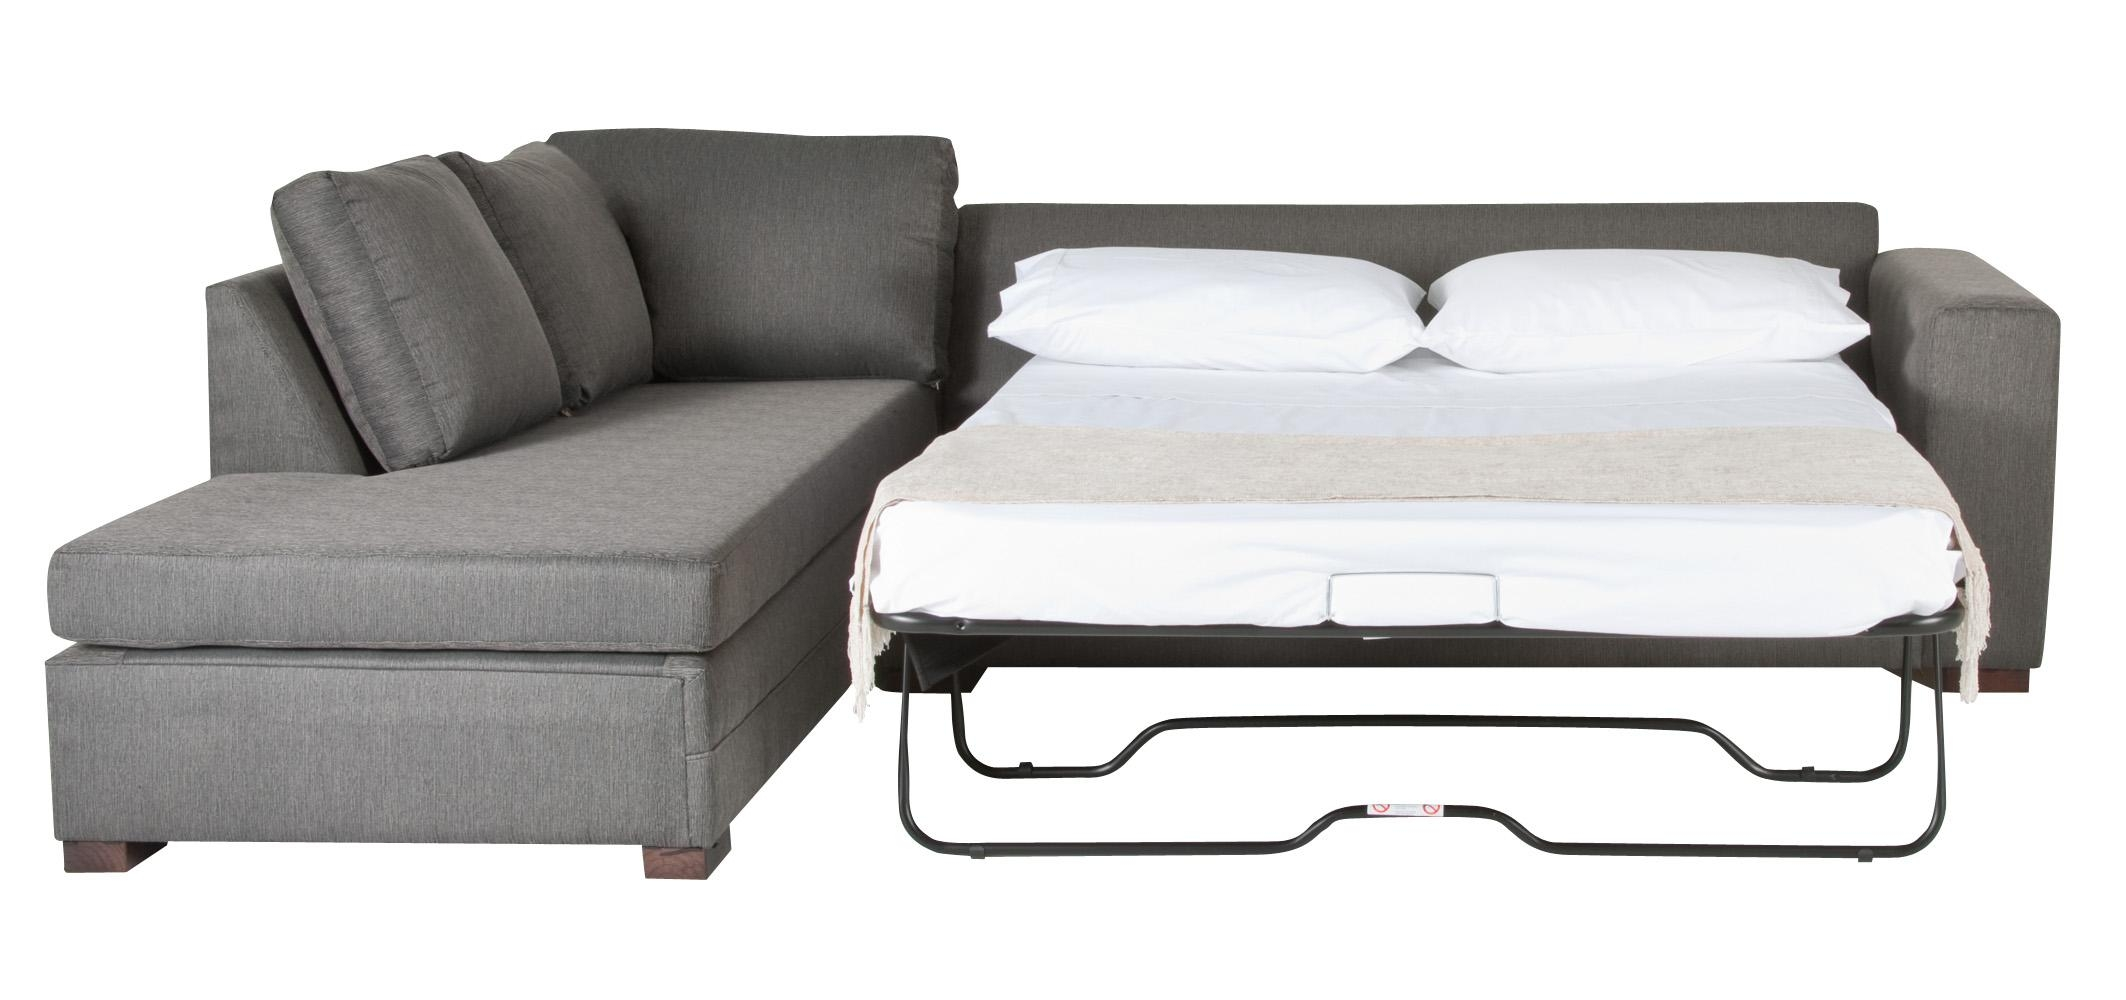 Bedroom: Exquisite Amour Sectional Couch With Pull Out Bed For Within Pull Out Sectional (View 1 of 20)